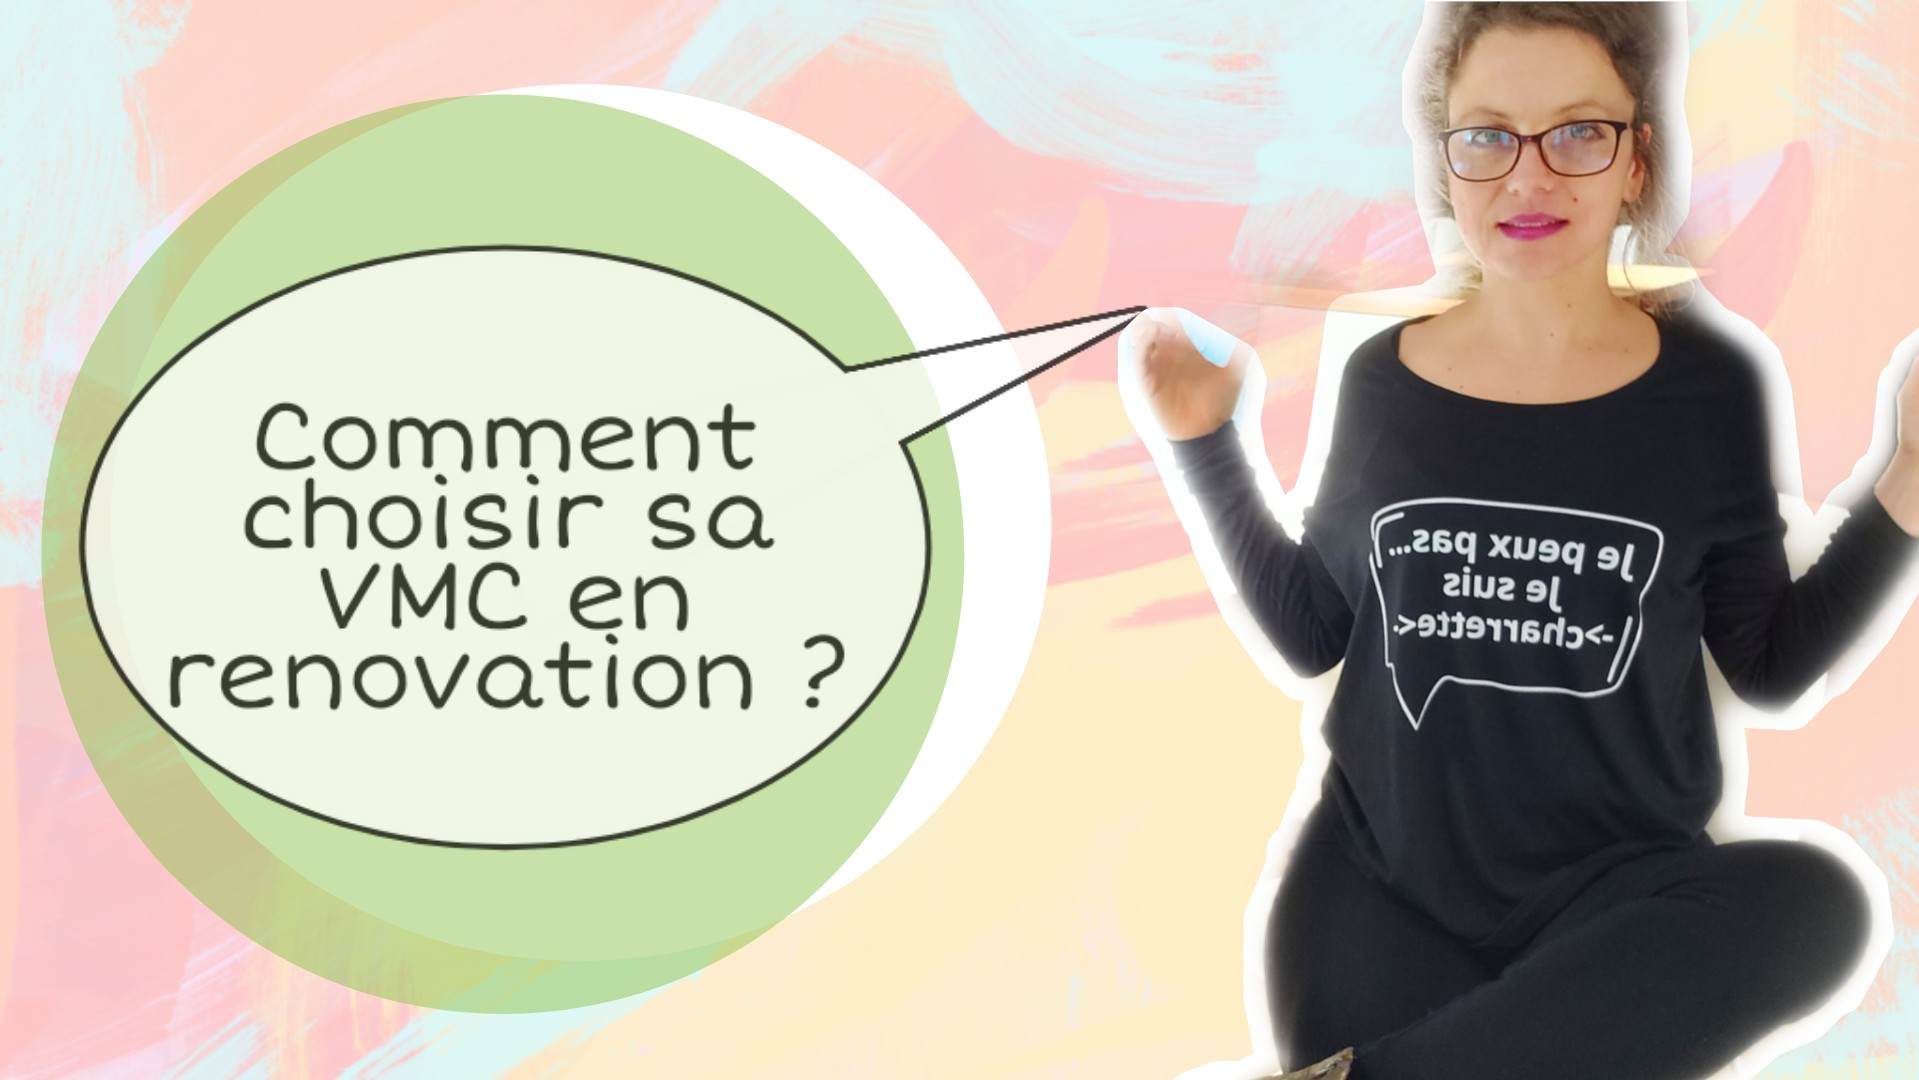 comment choisir sa ventilation en renovation